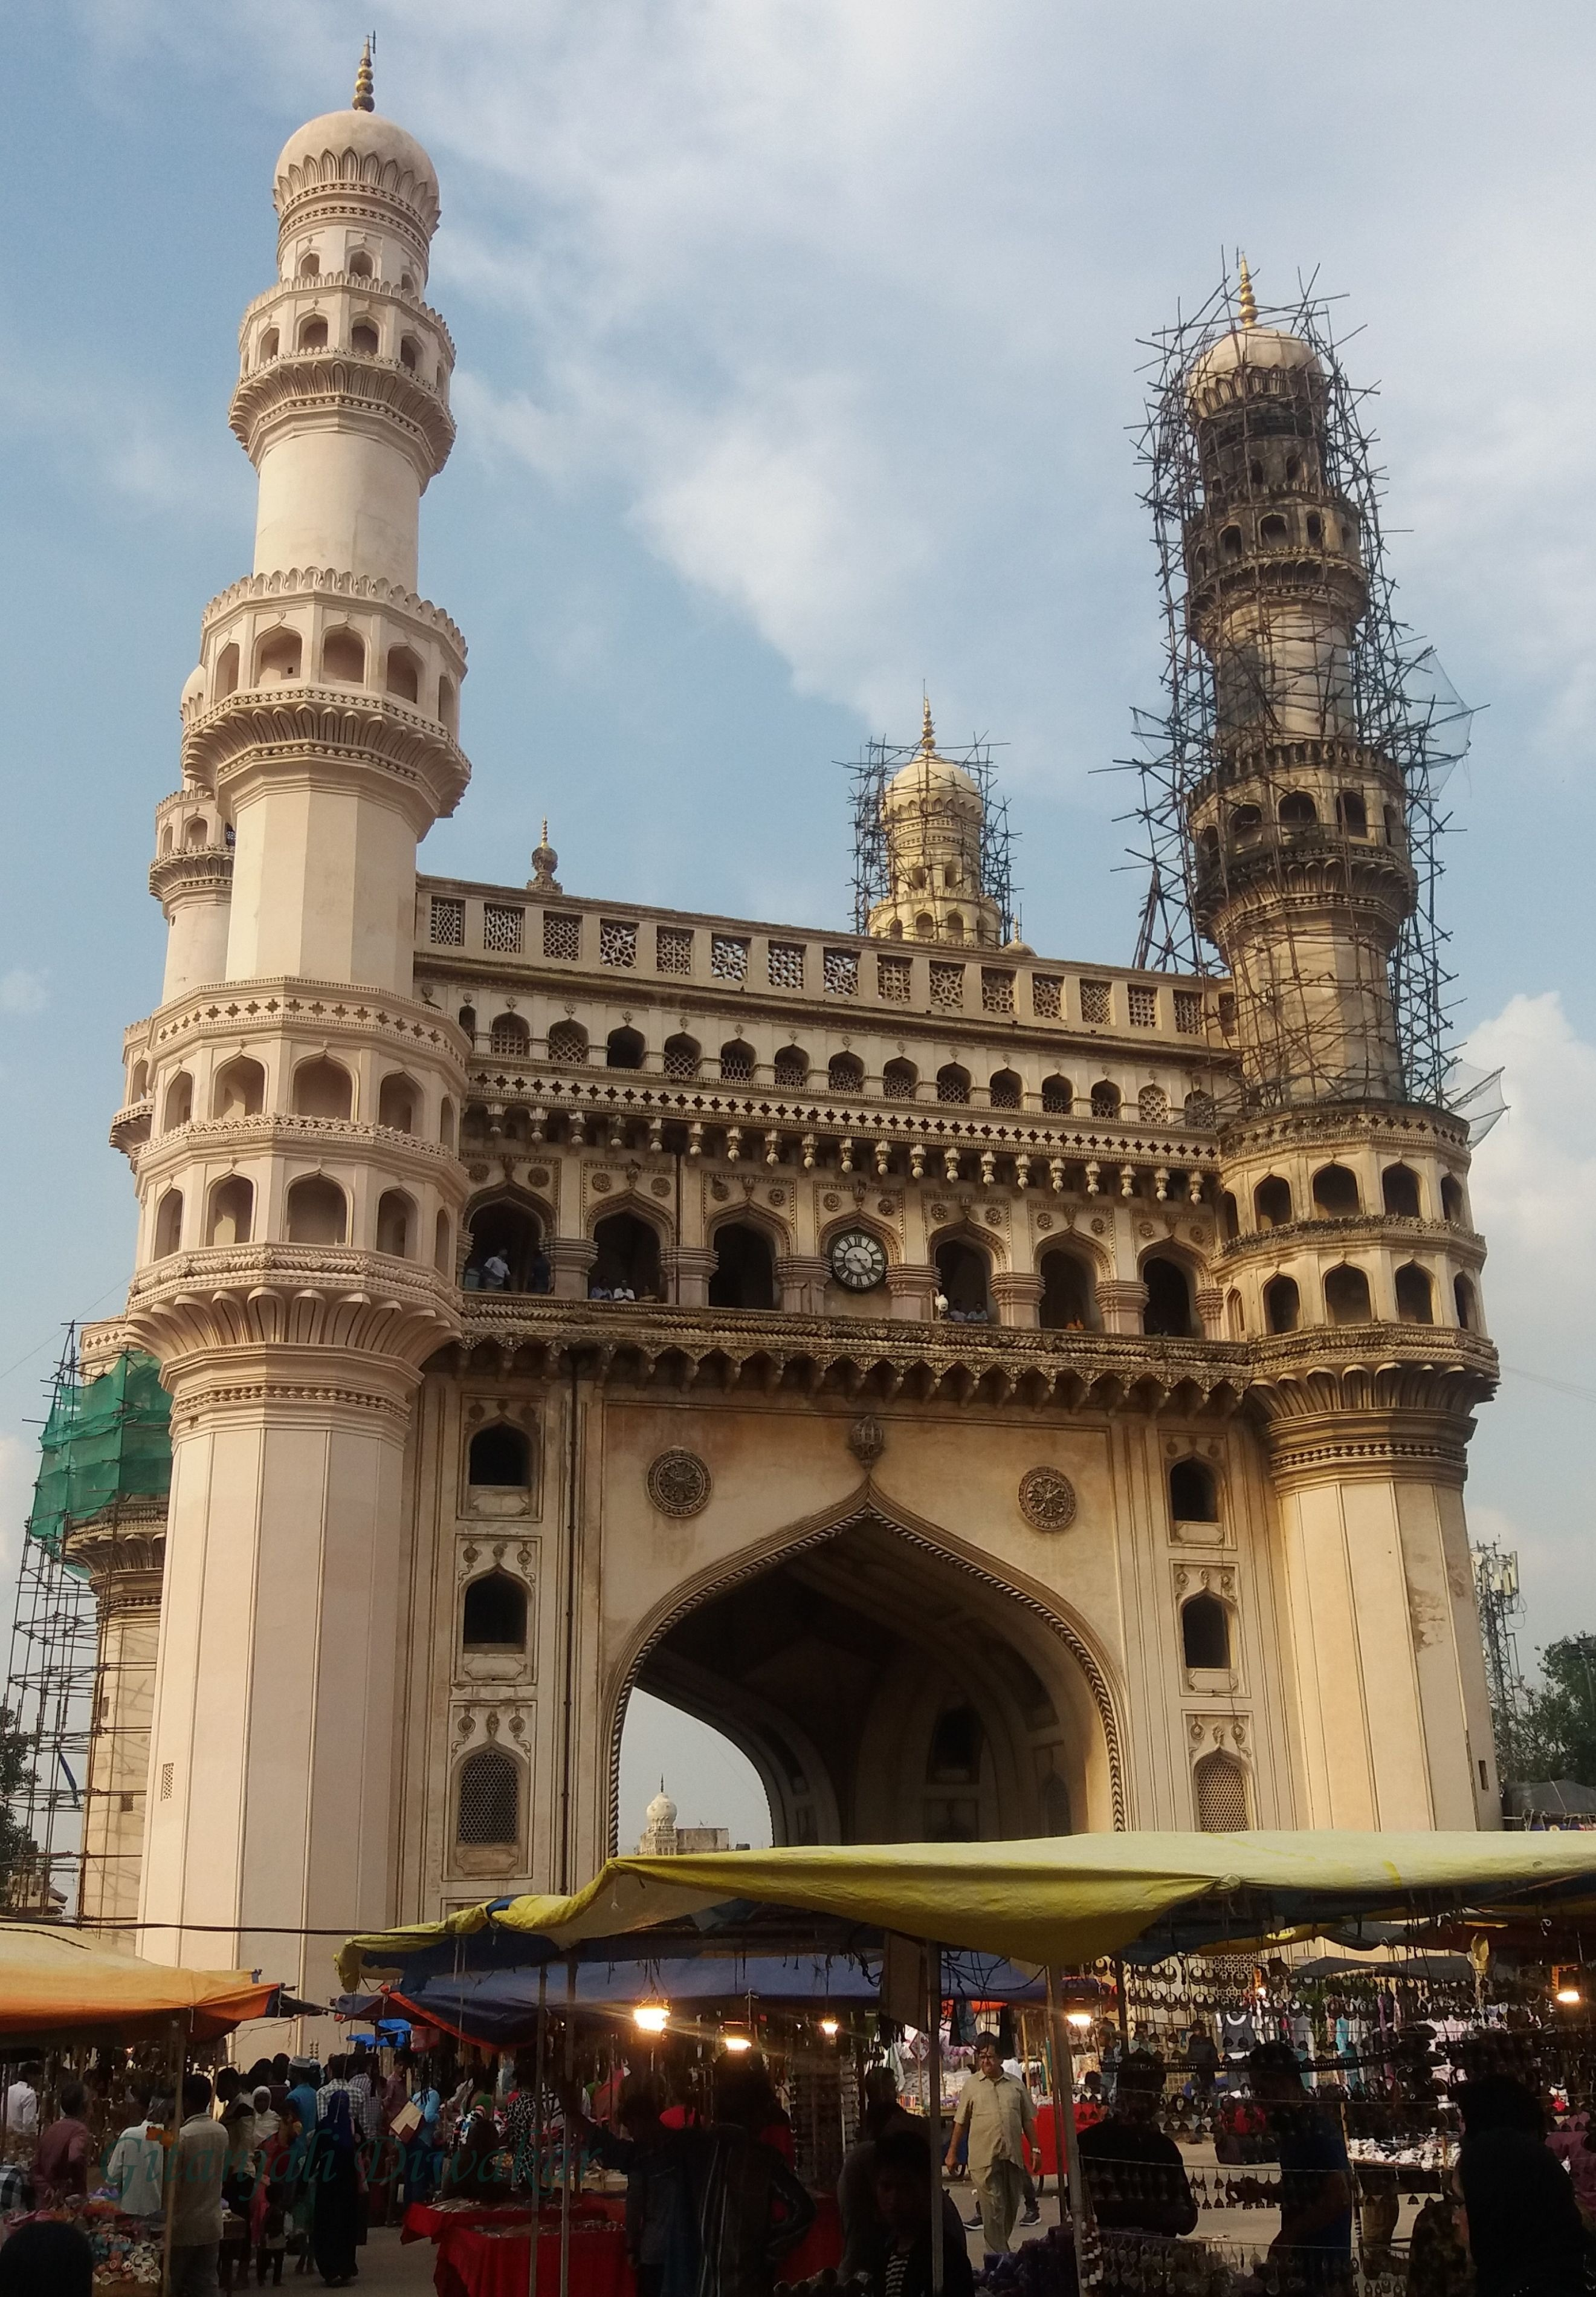 The city of Hyderabad was built around the Charminar.